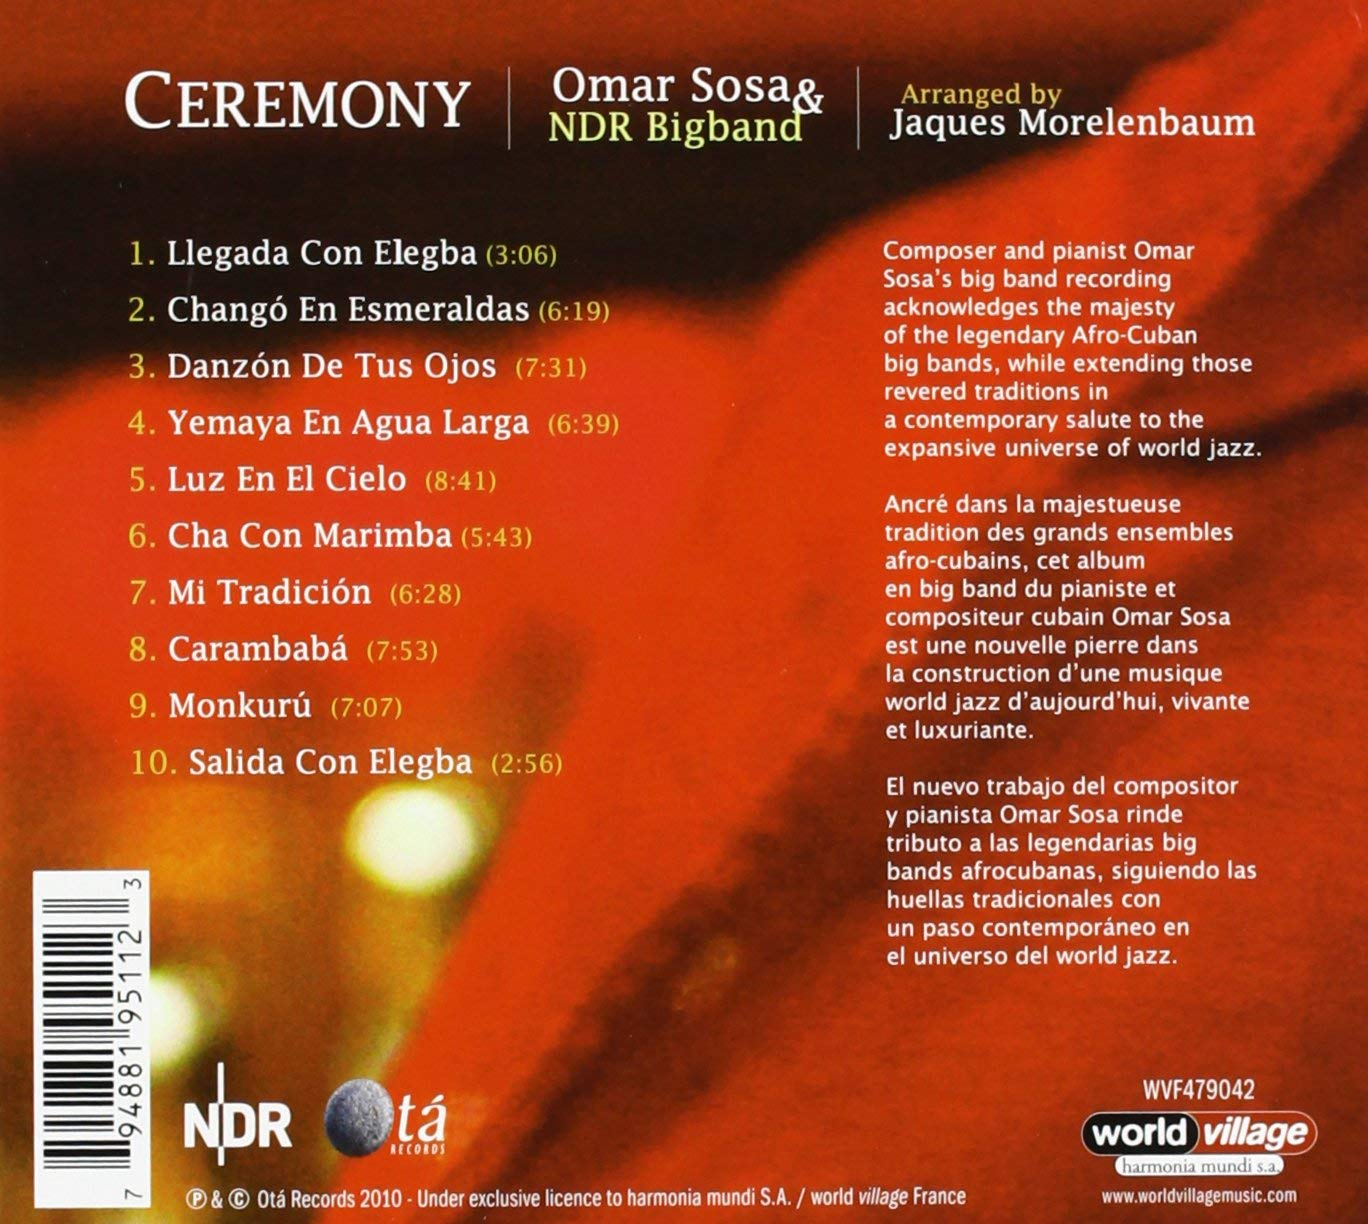 Jazz afro-cubain & musiques latinos - Playlist - Page 2 81c0bv10